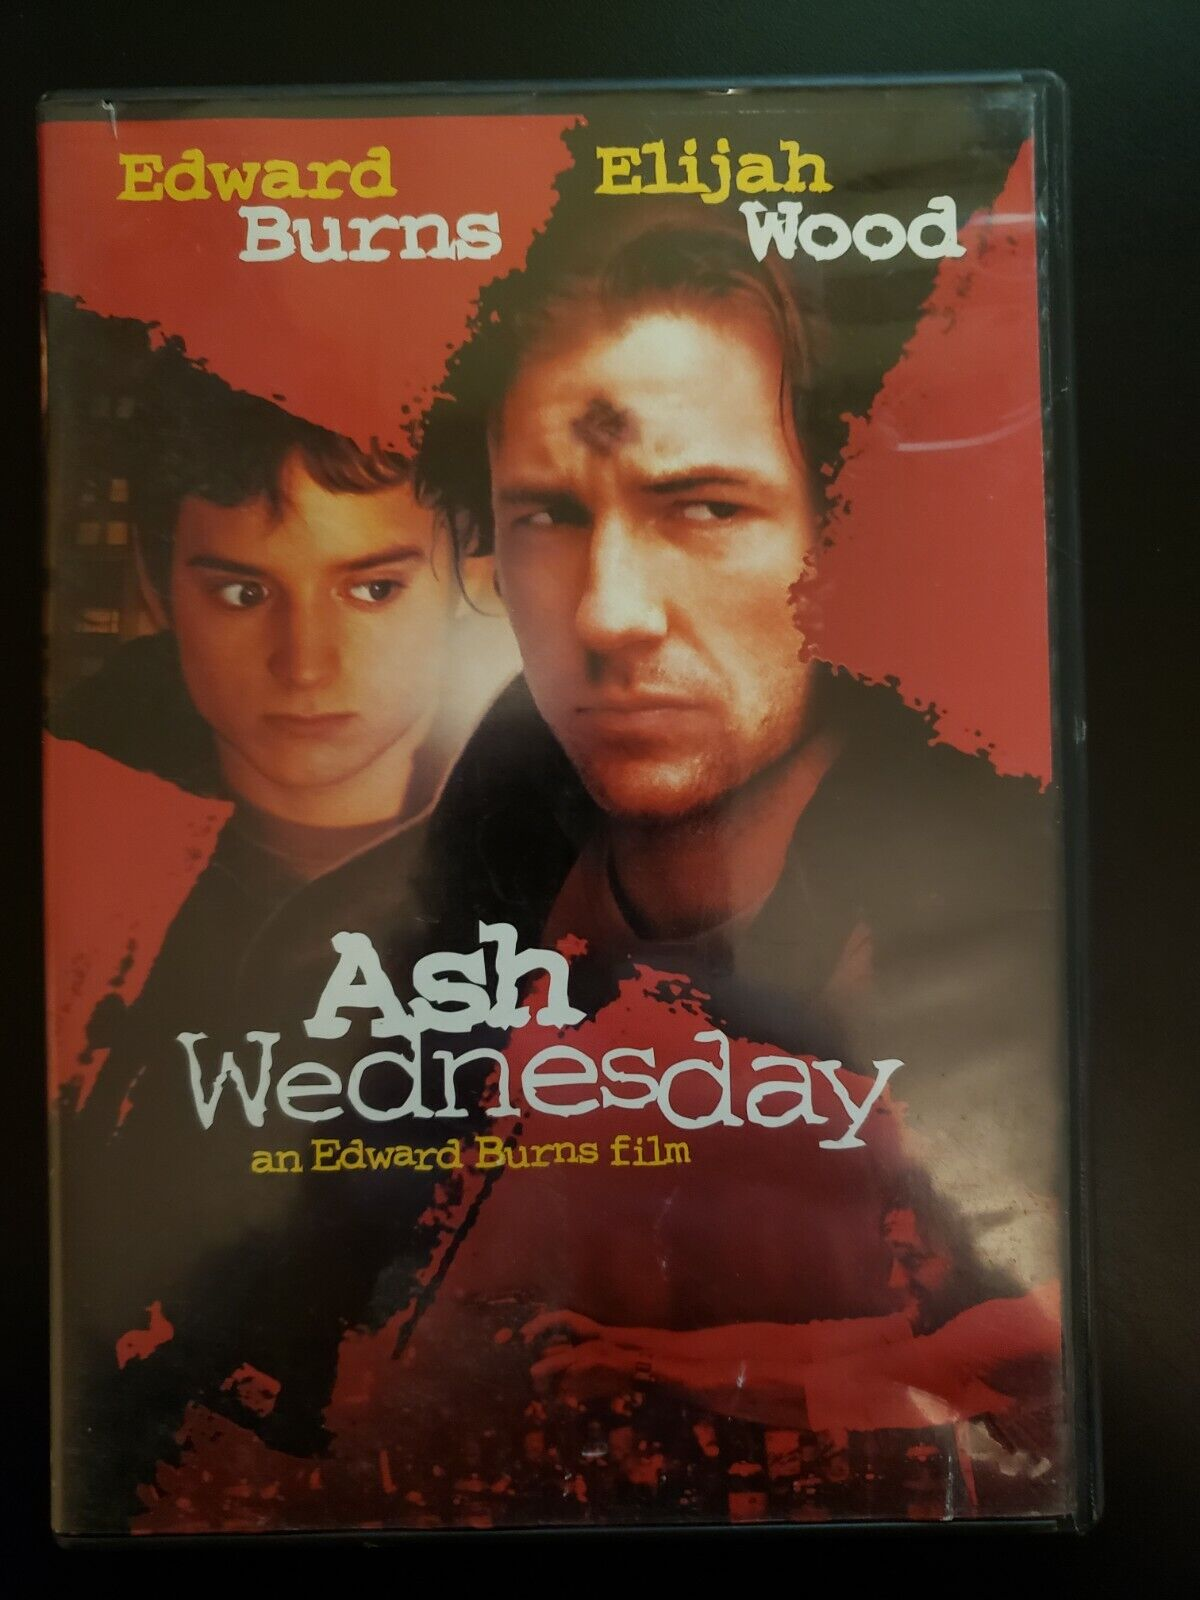 Ash Wednesday DVD COMPLETE WITH CASE COVER ARTWORK BUY 2 GET 1 FREE - $4.49